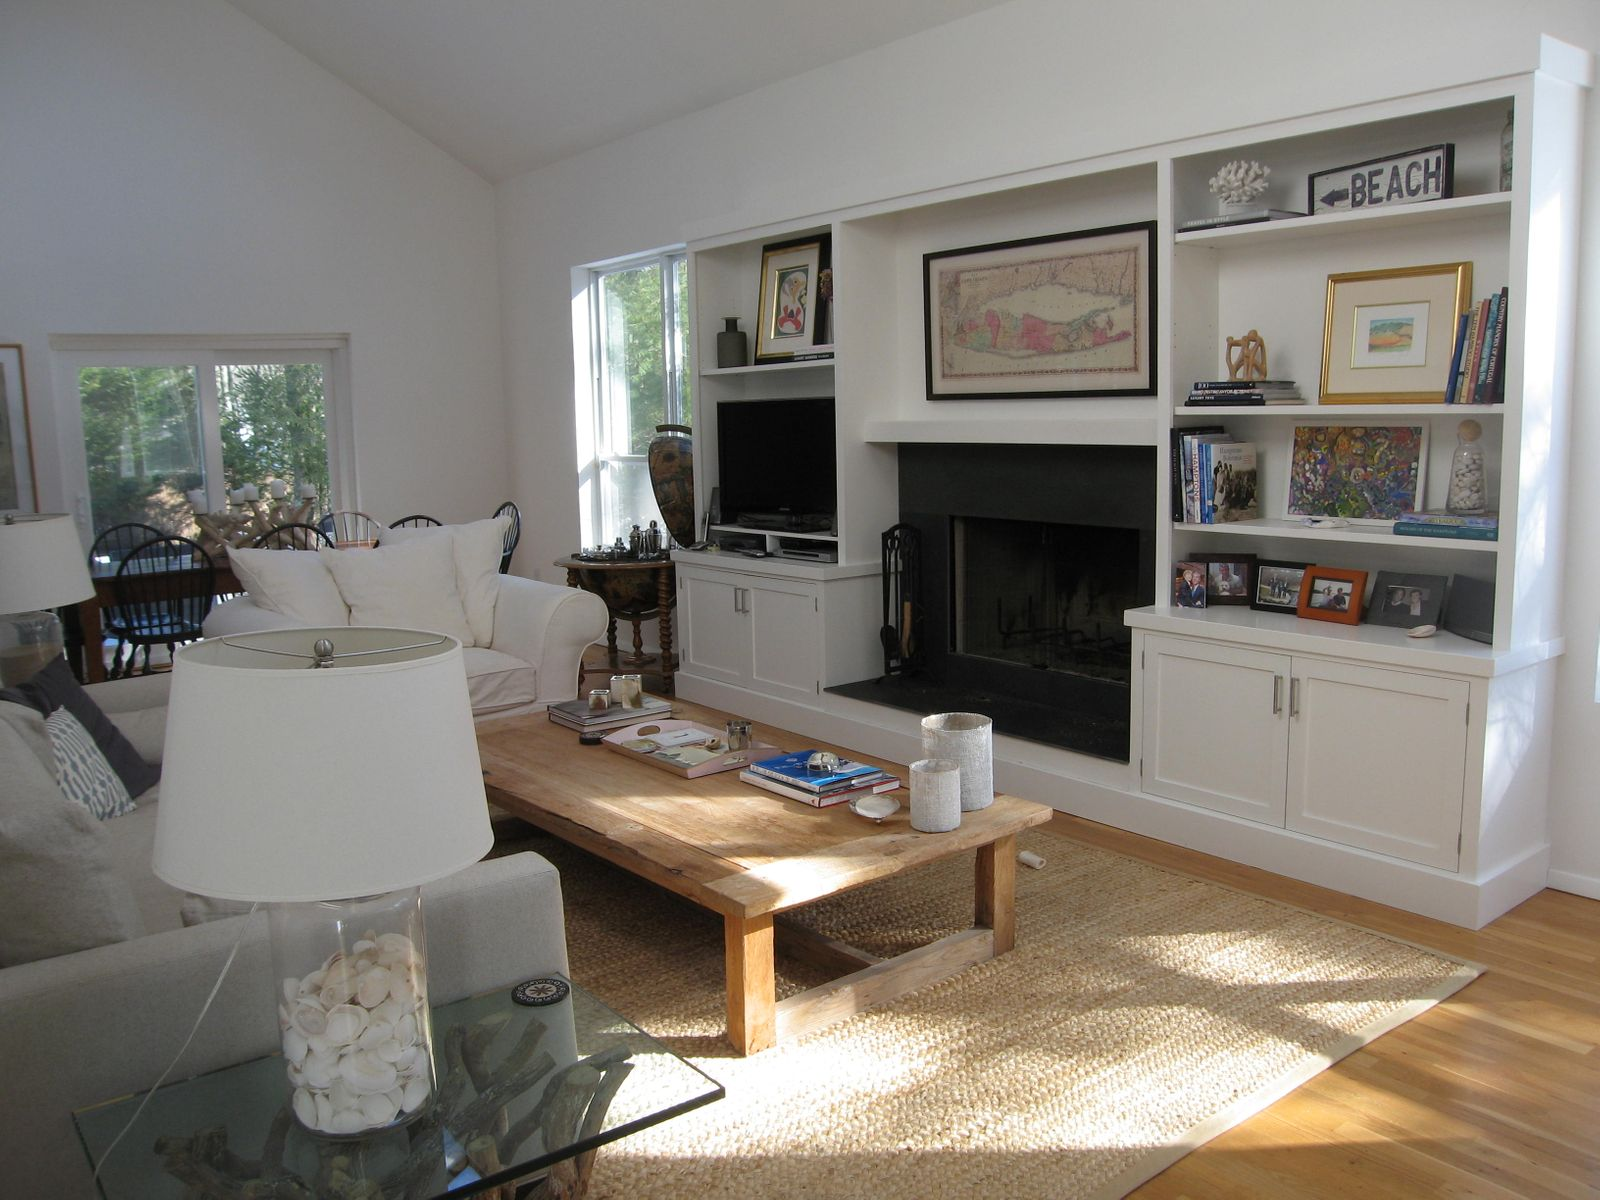 Chic Summer Rental close to the Village, East Hampton NY Single Family Home - Hamptons Real Estate